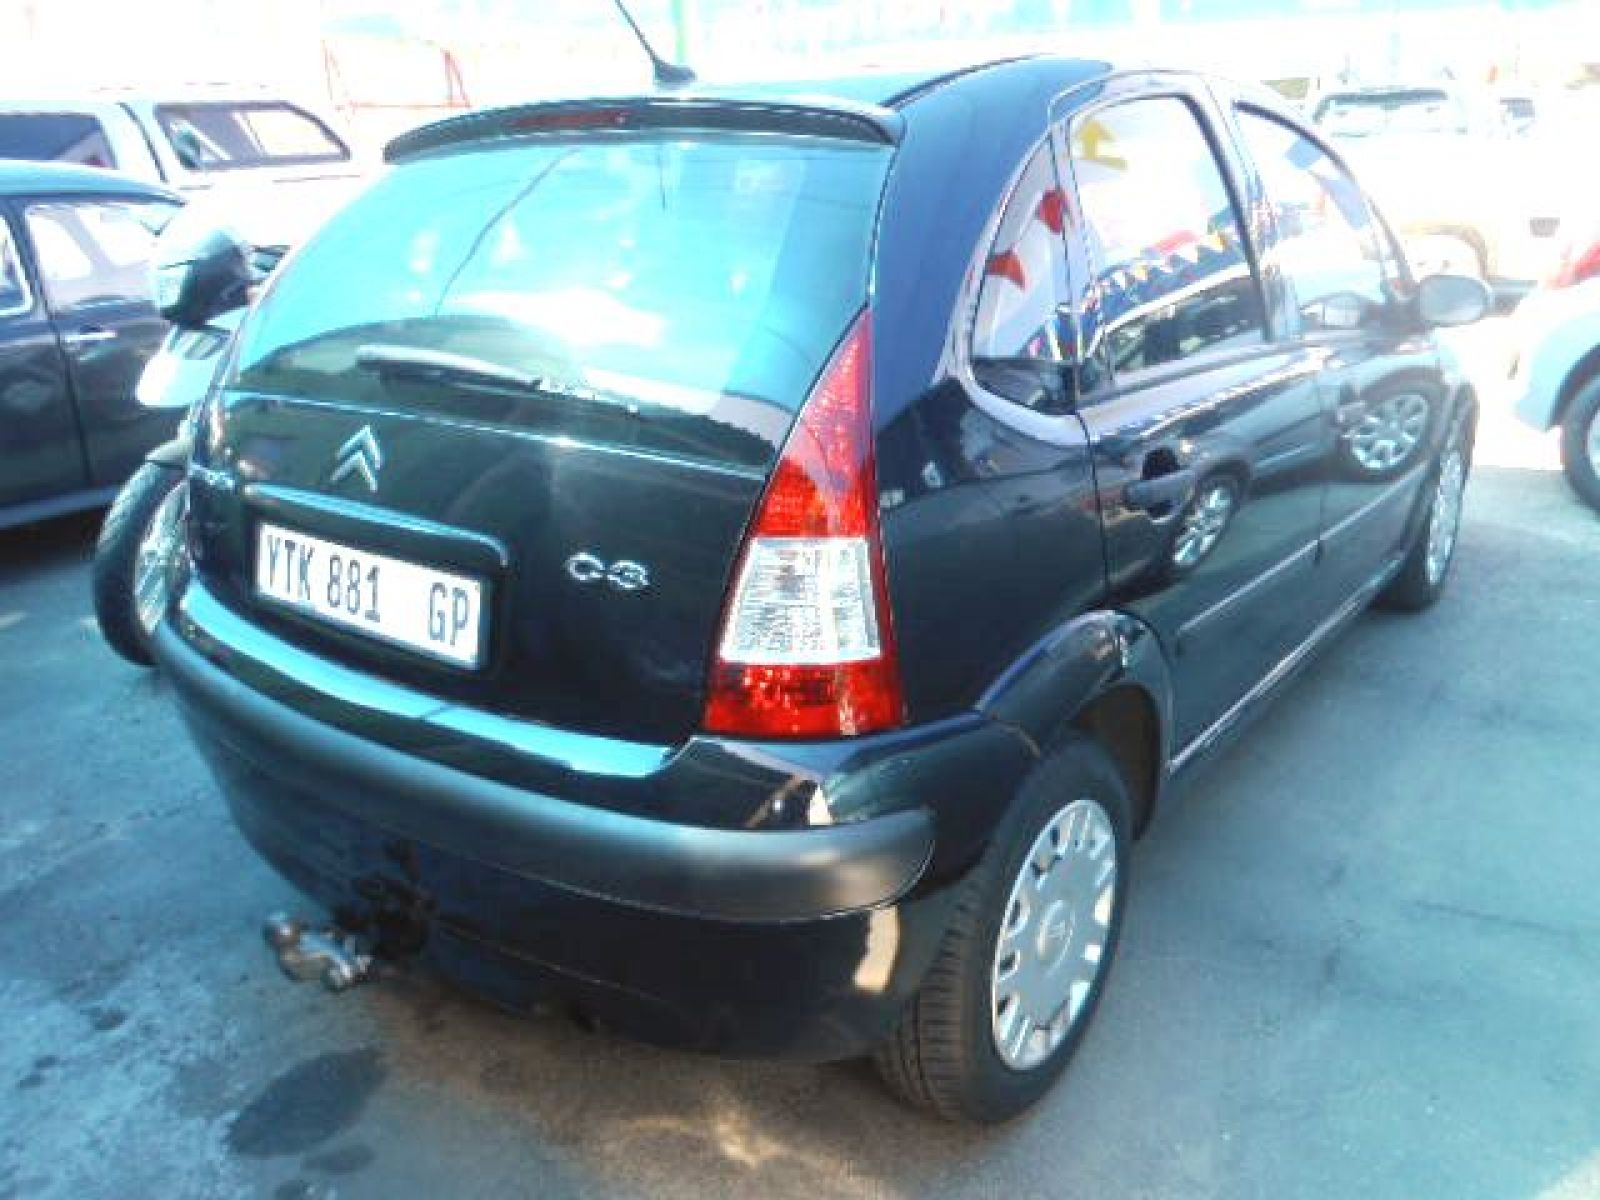 citroen c3 1 4 hdi furio for sale in roodepoort gauteng. Black Bedroom Furniture Sets. Home Design Ideas